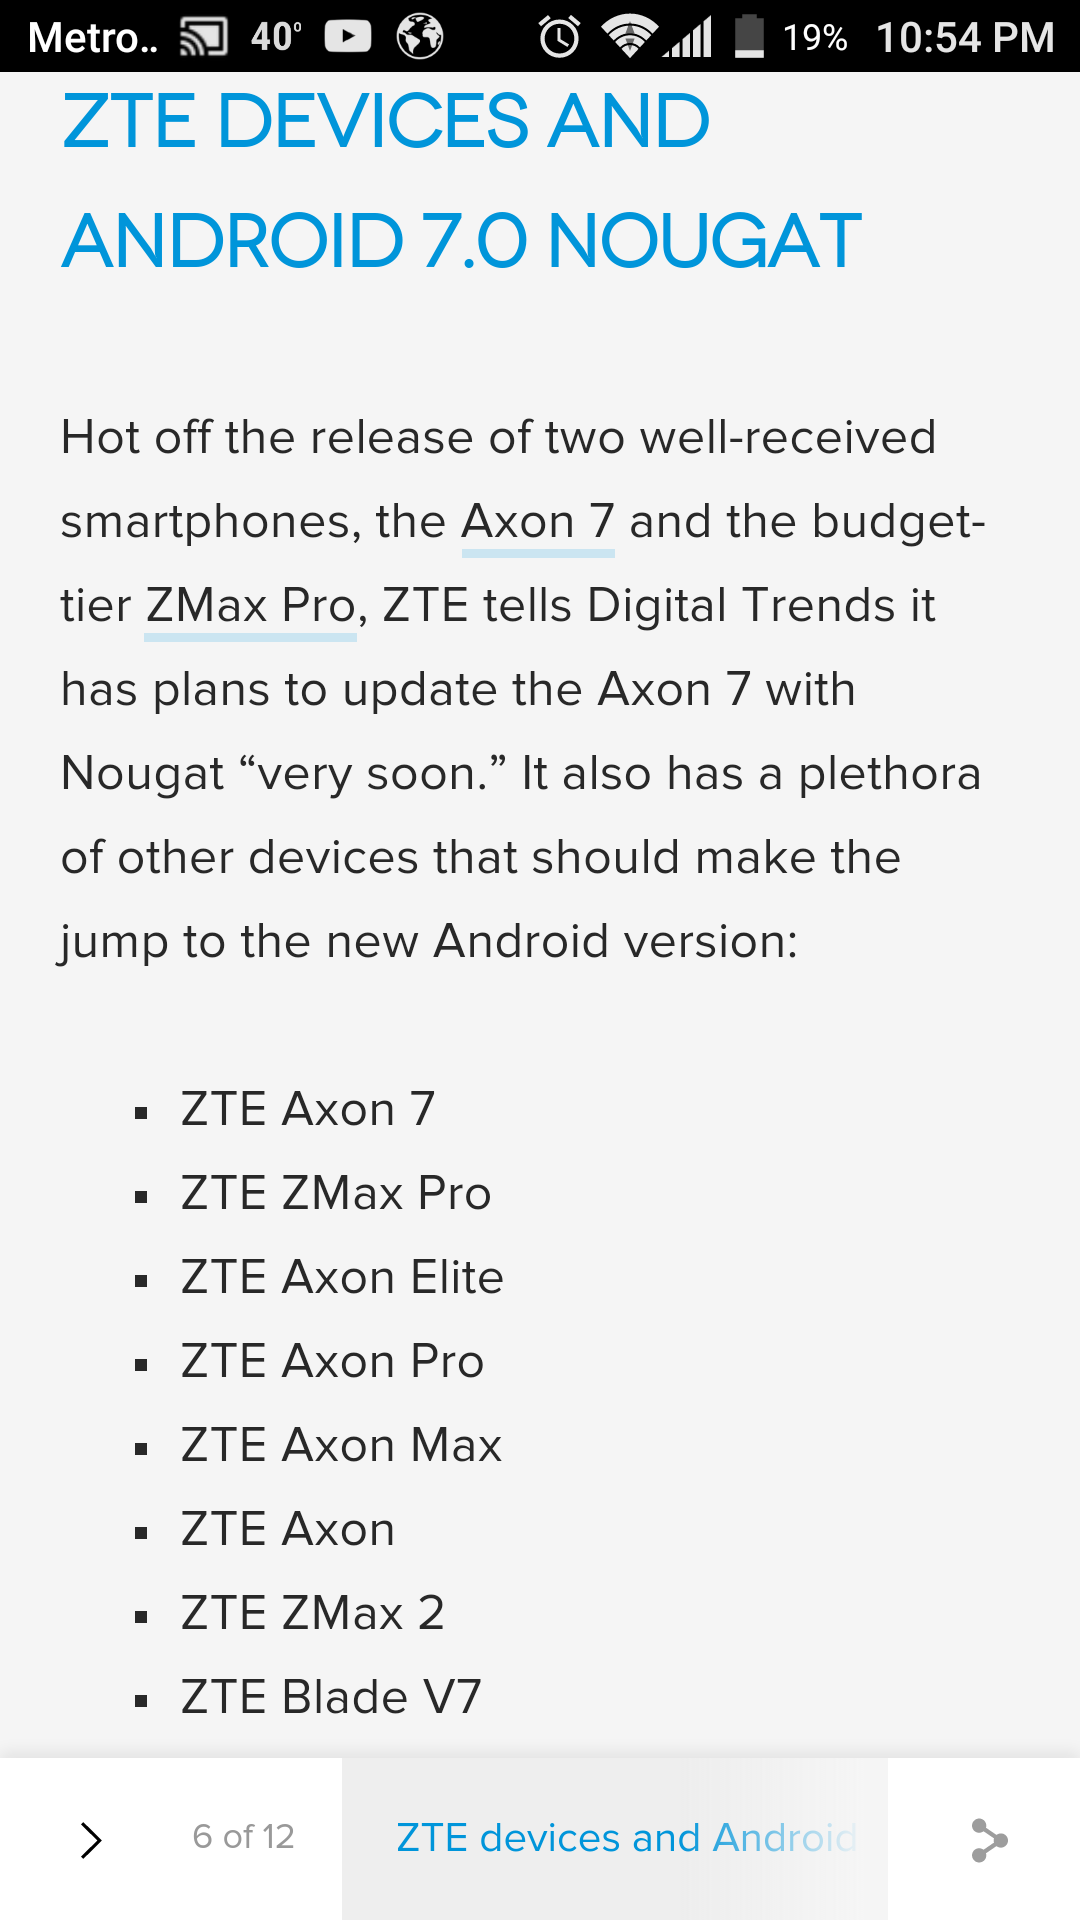 Nougat update for zte zmax pro - ZTE Zmax Pro | Android Forums